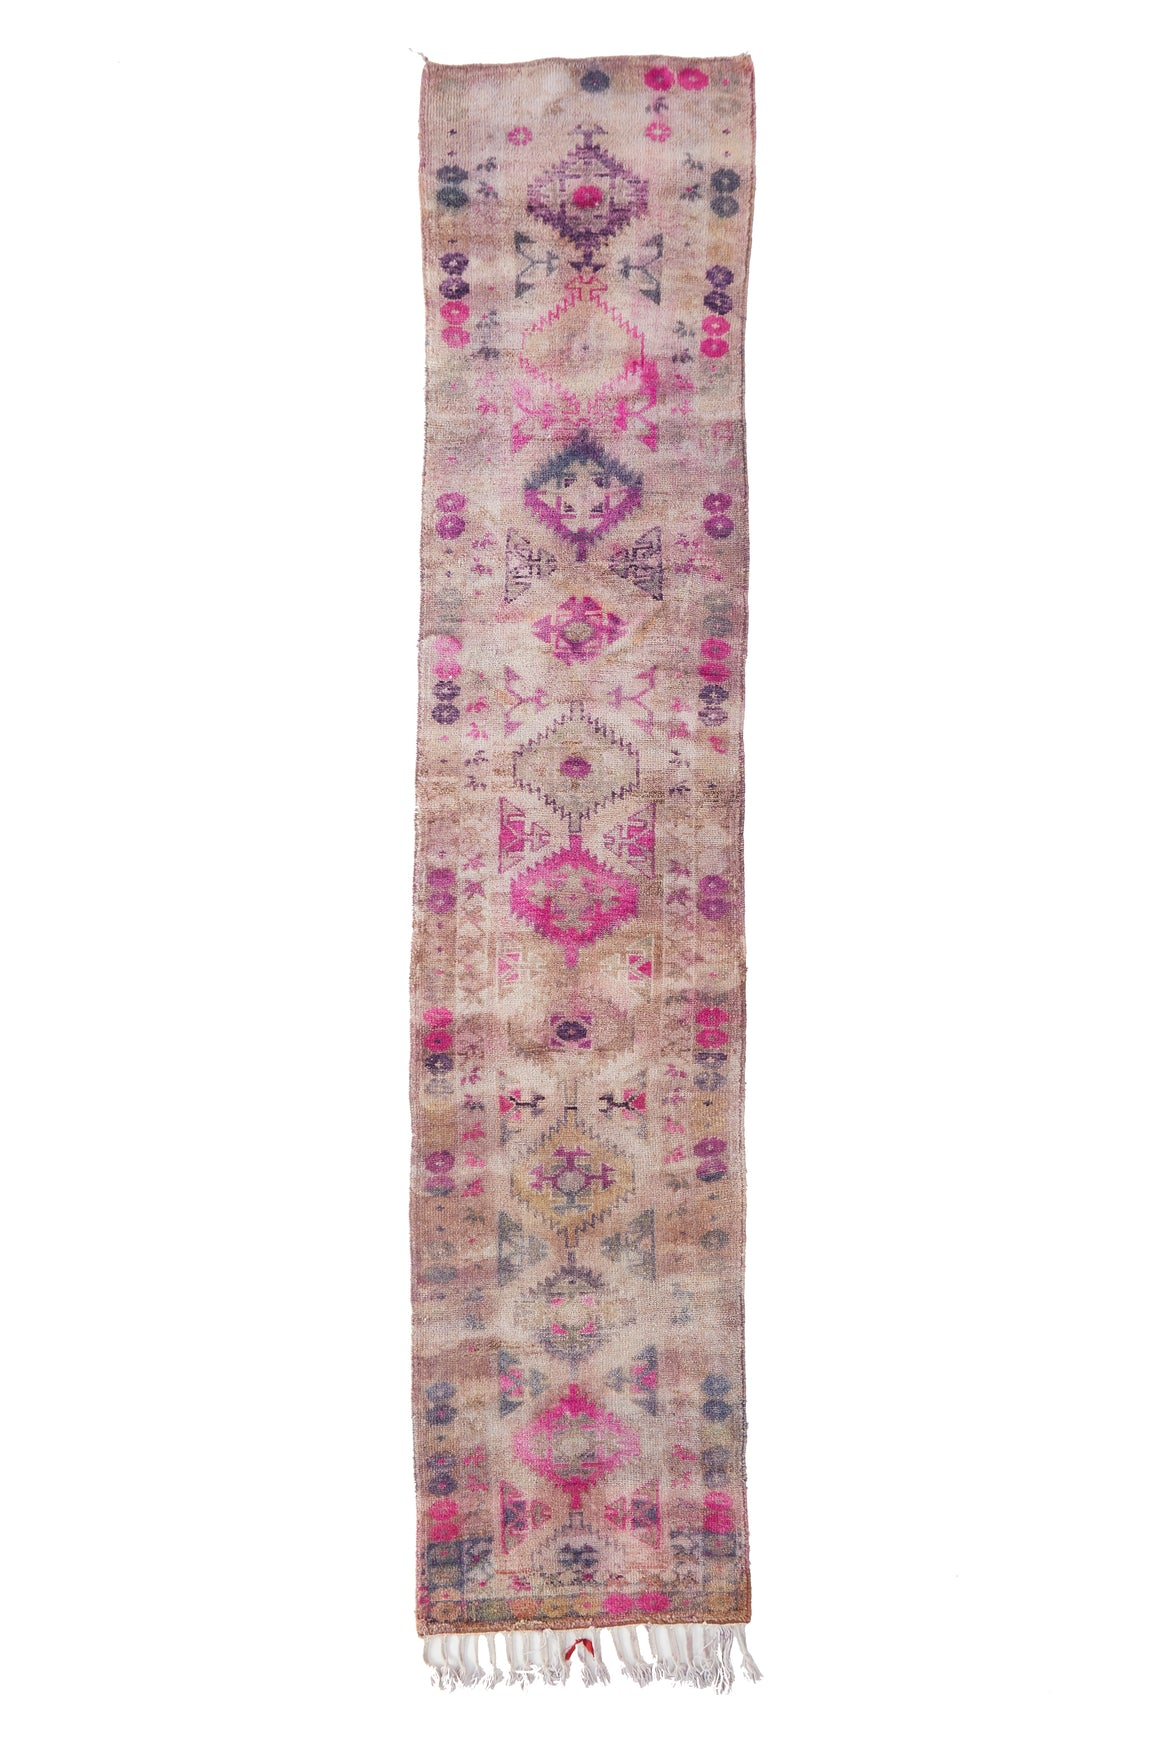 'Allium' Vintage Turkish Ombré Runner - 2'9'' x 13'4'' - Canary Lane - Curated Textiles